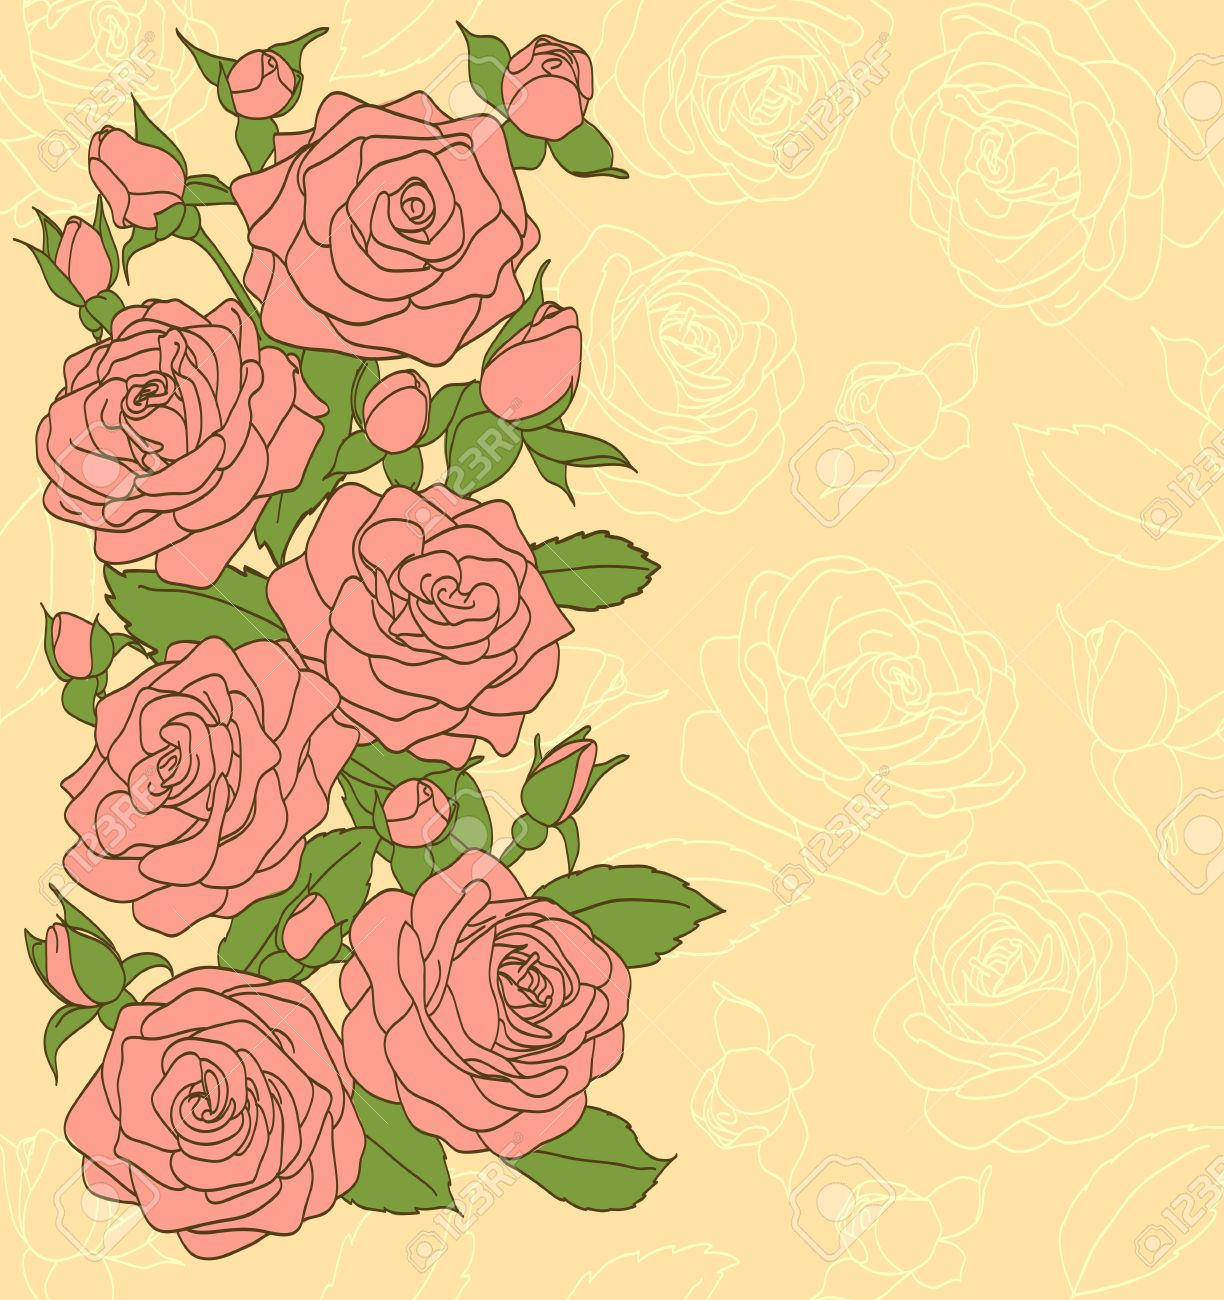 Flowers, Leaves And Buds Of Pink Roses Painted In The Old Style.